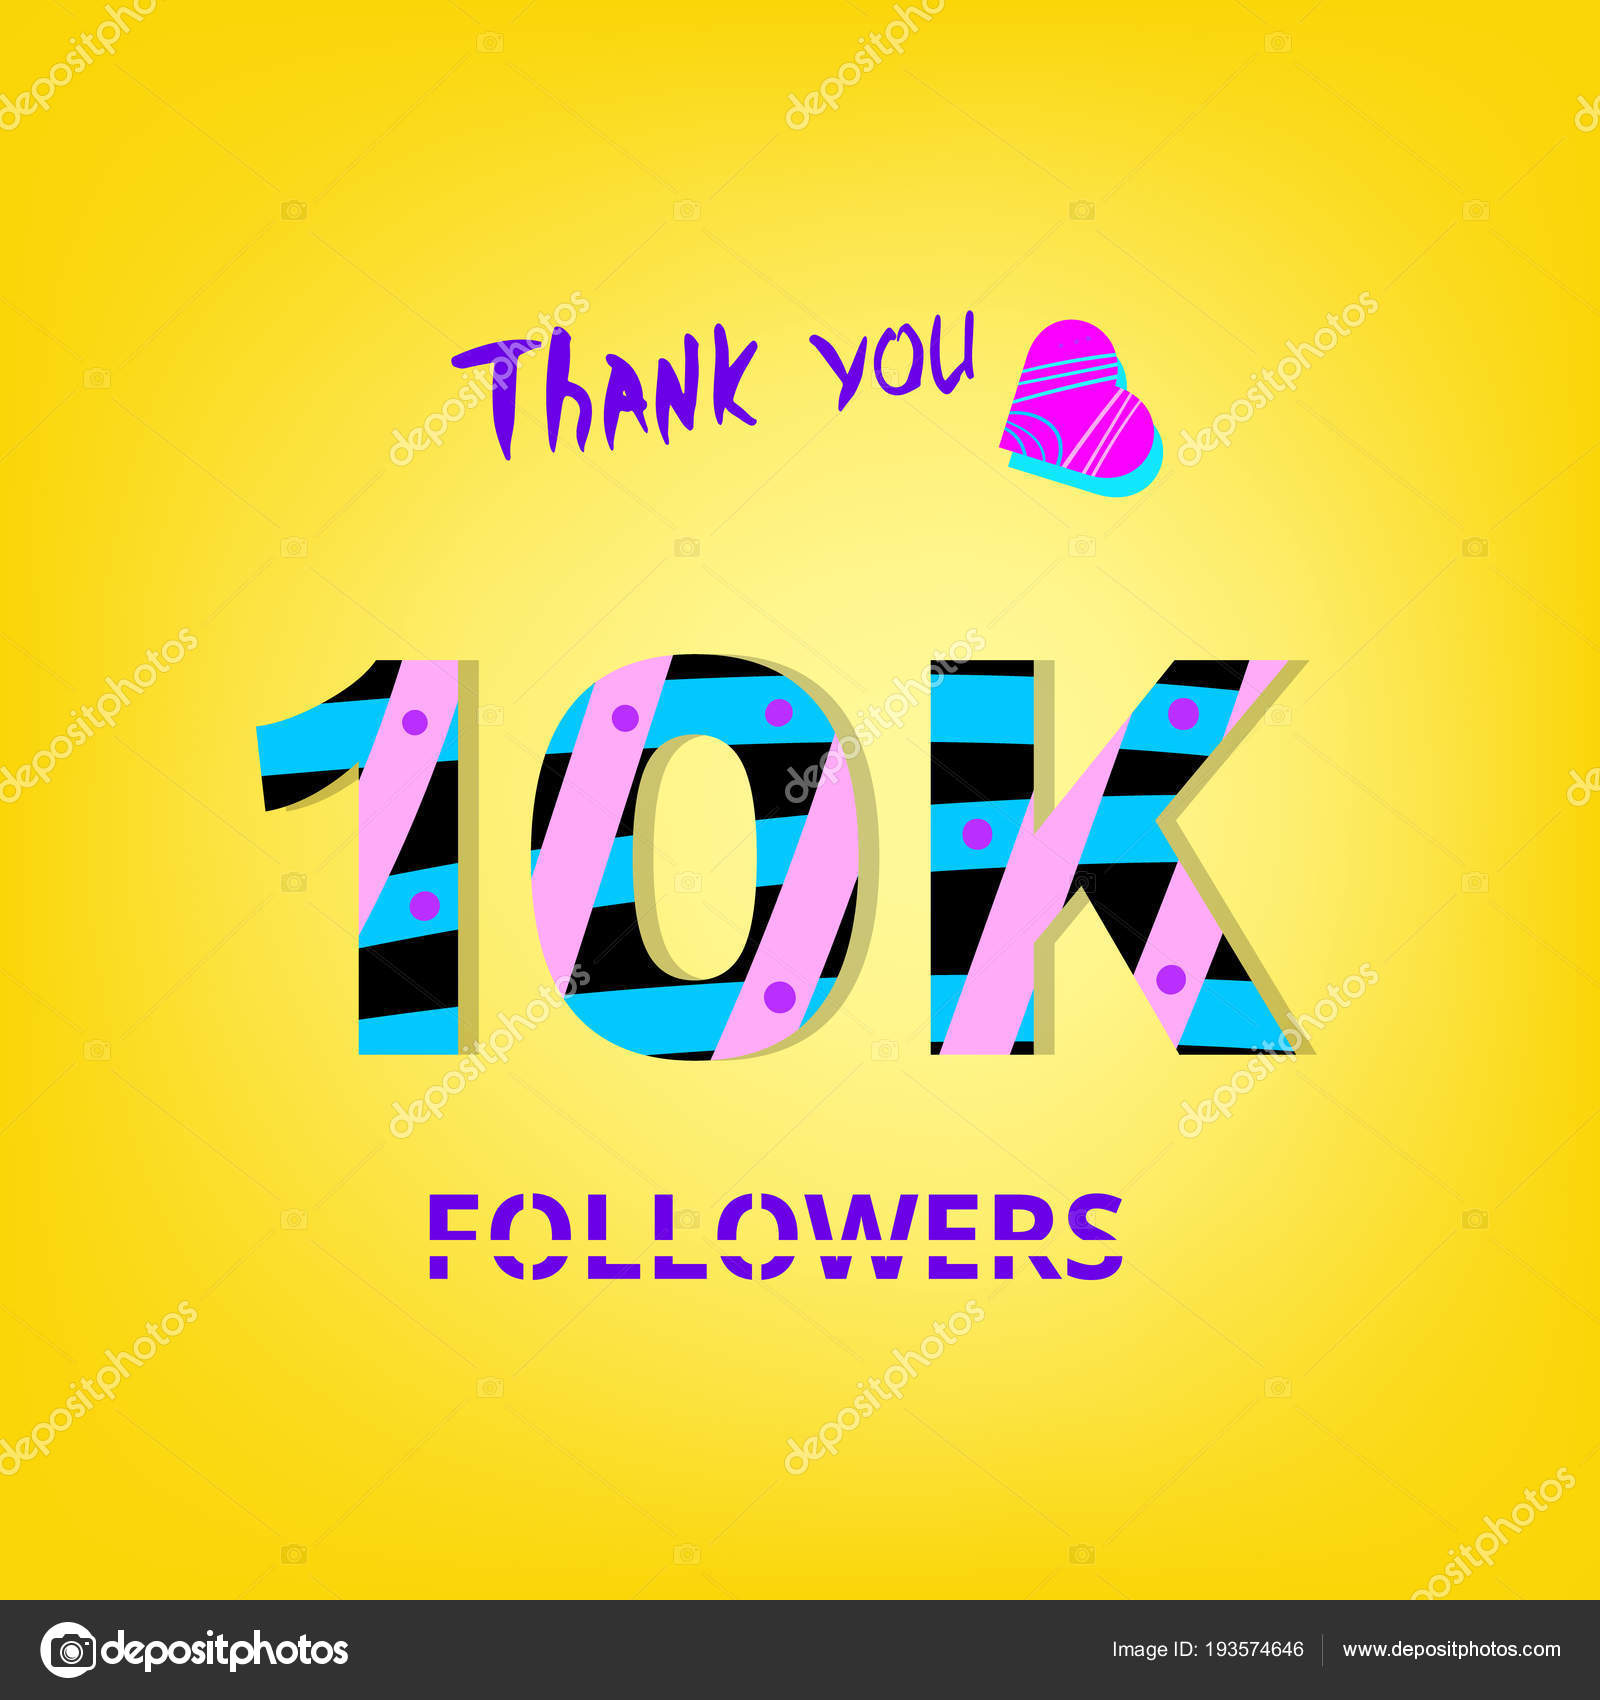 10k Photography 10kphotography: 10K Followers Thank You Phrase On Yellow Background